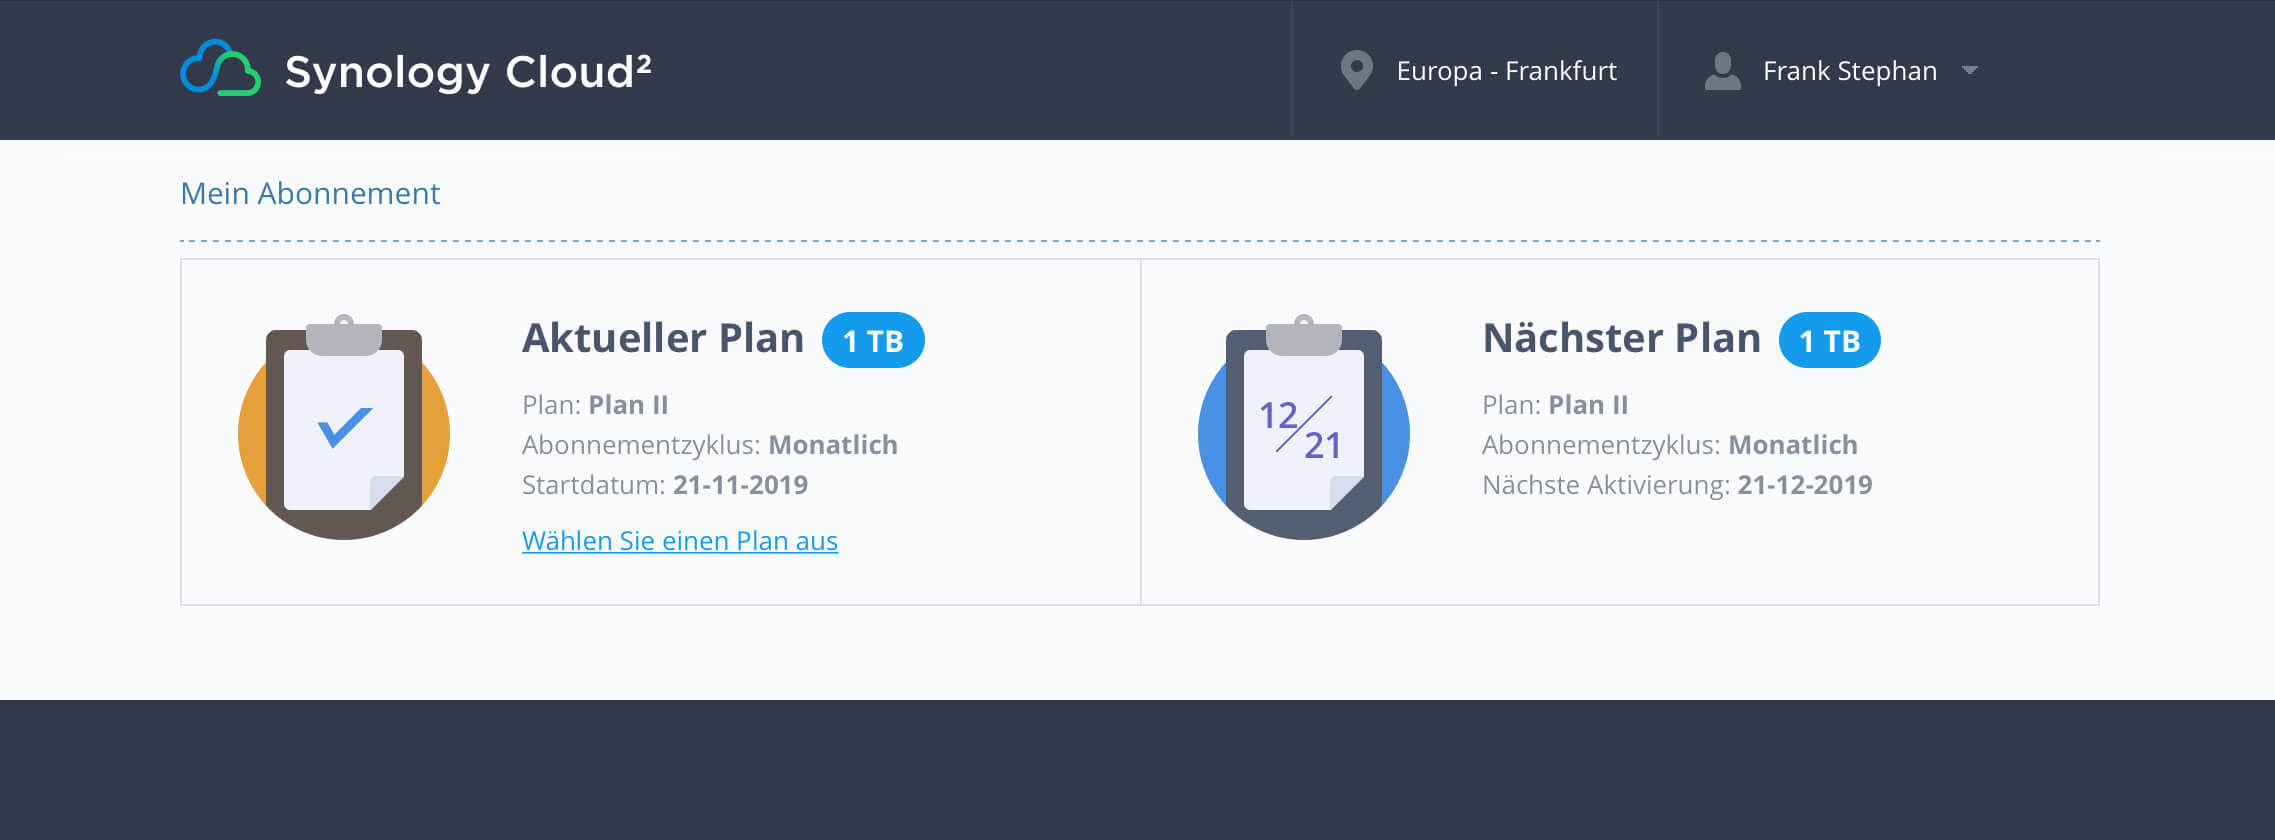 Online-Backup auf die Synology Cloud²